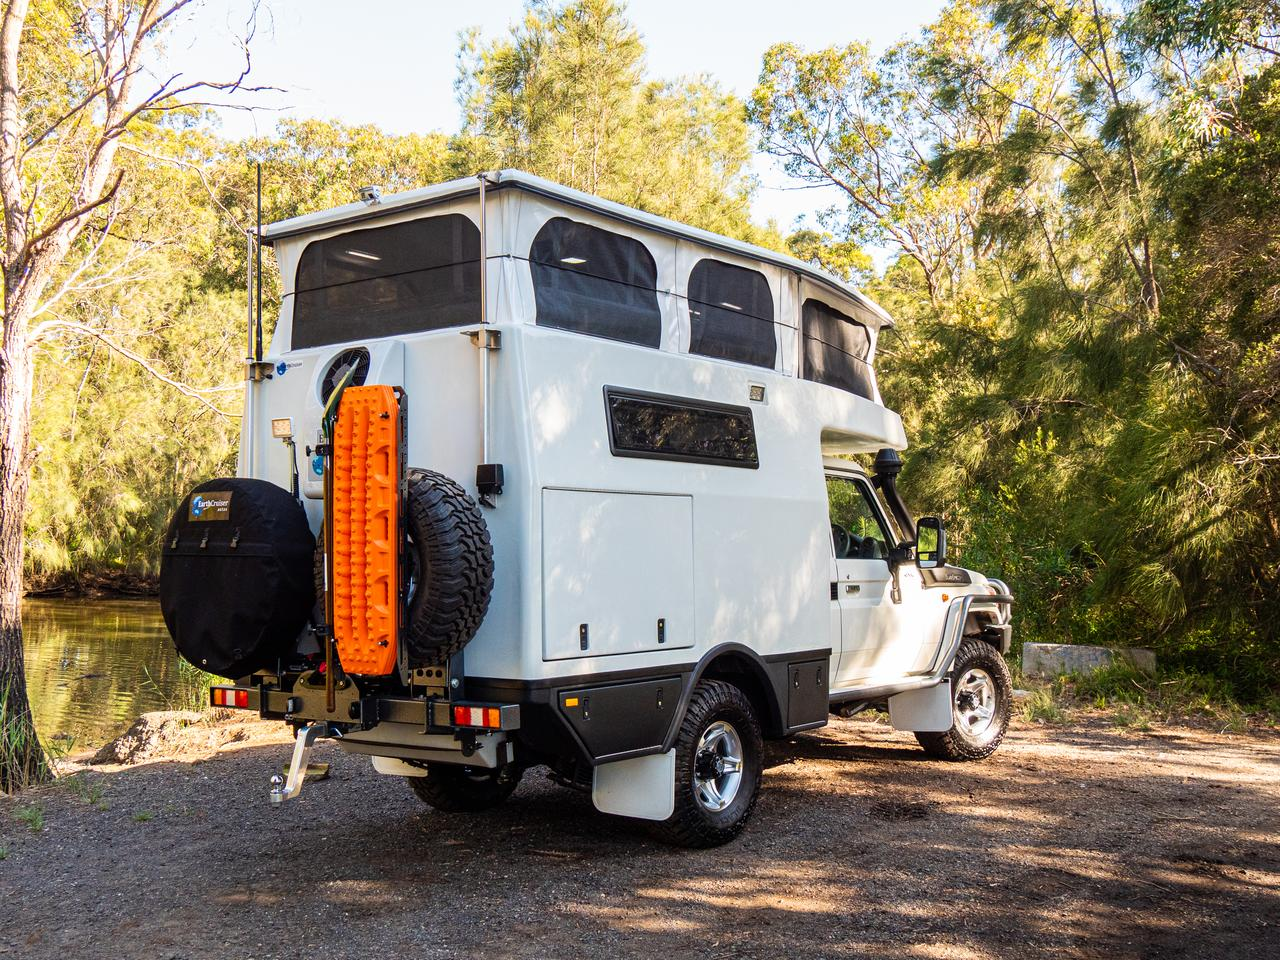 The EarthCruiser XTR250 combines an EarthCruiser motorhome module with an upgraded Land Cruiser 79 Series chassis